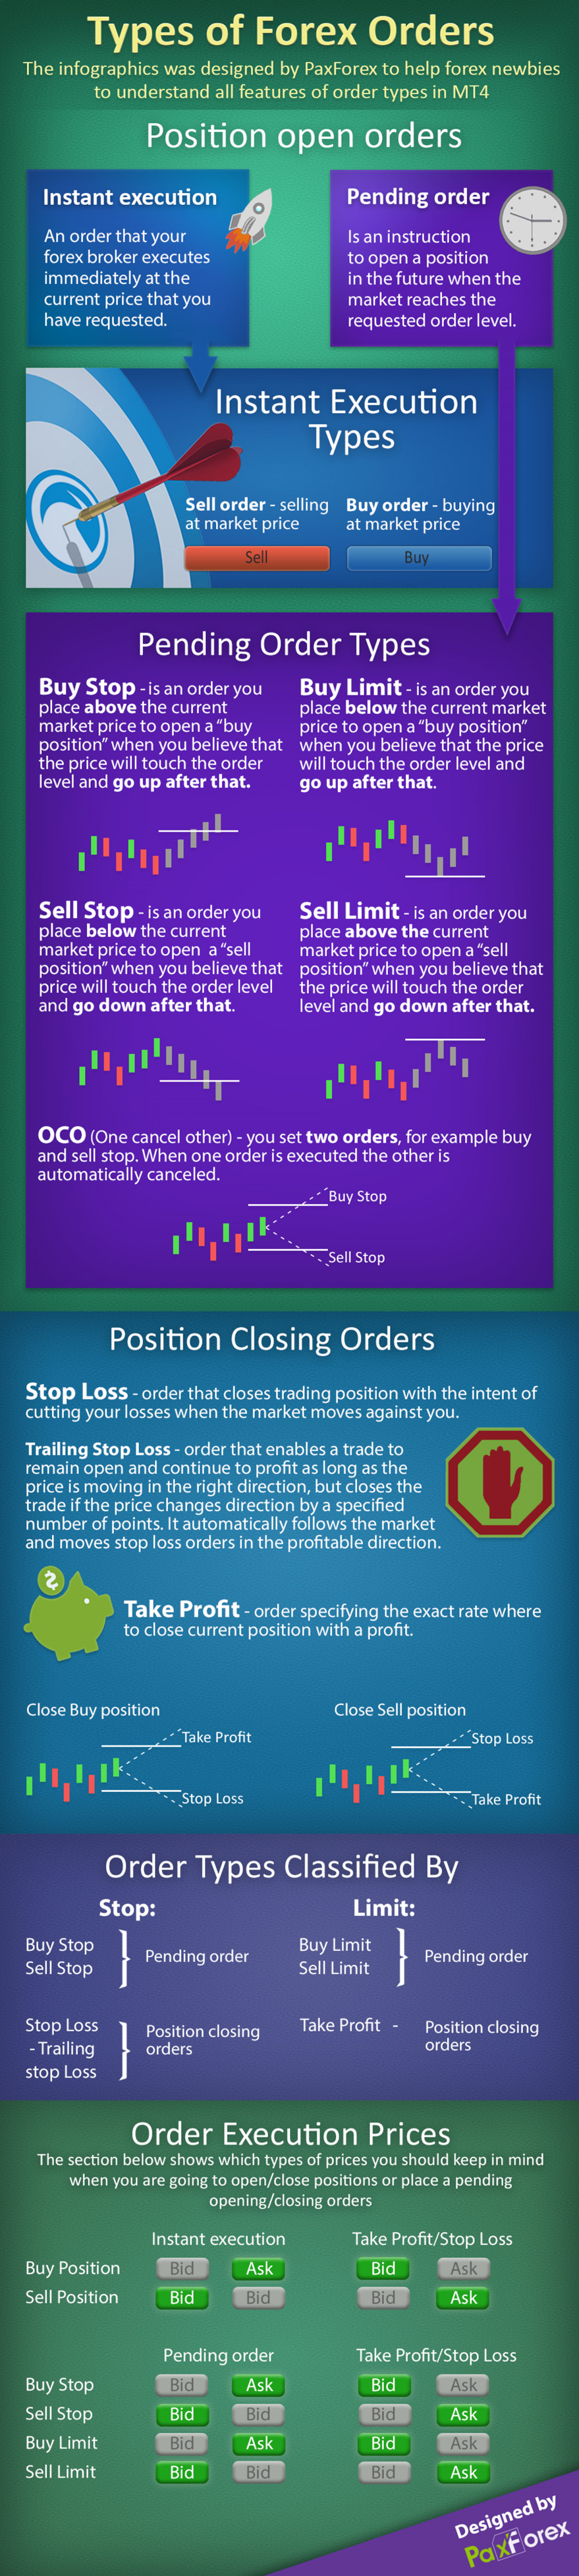 Types of Forex Orders Infographic